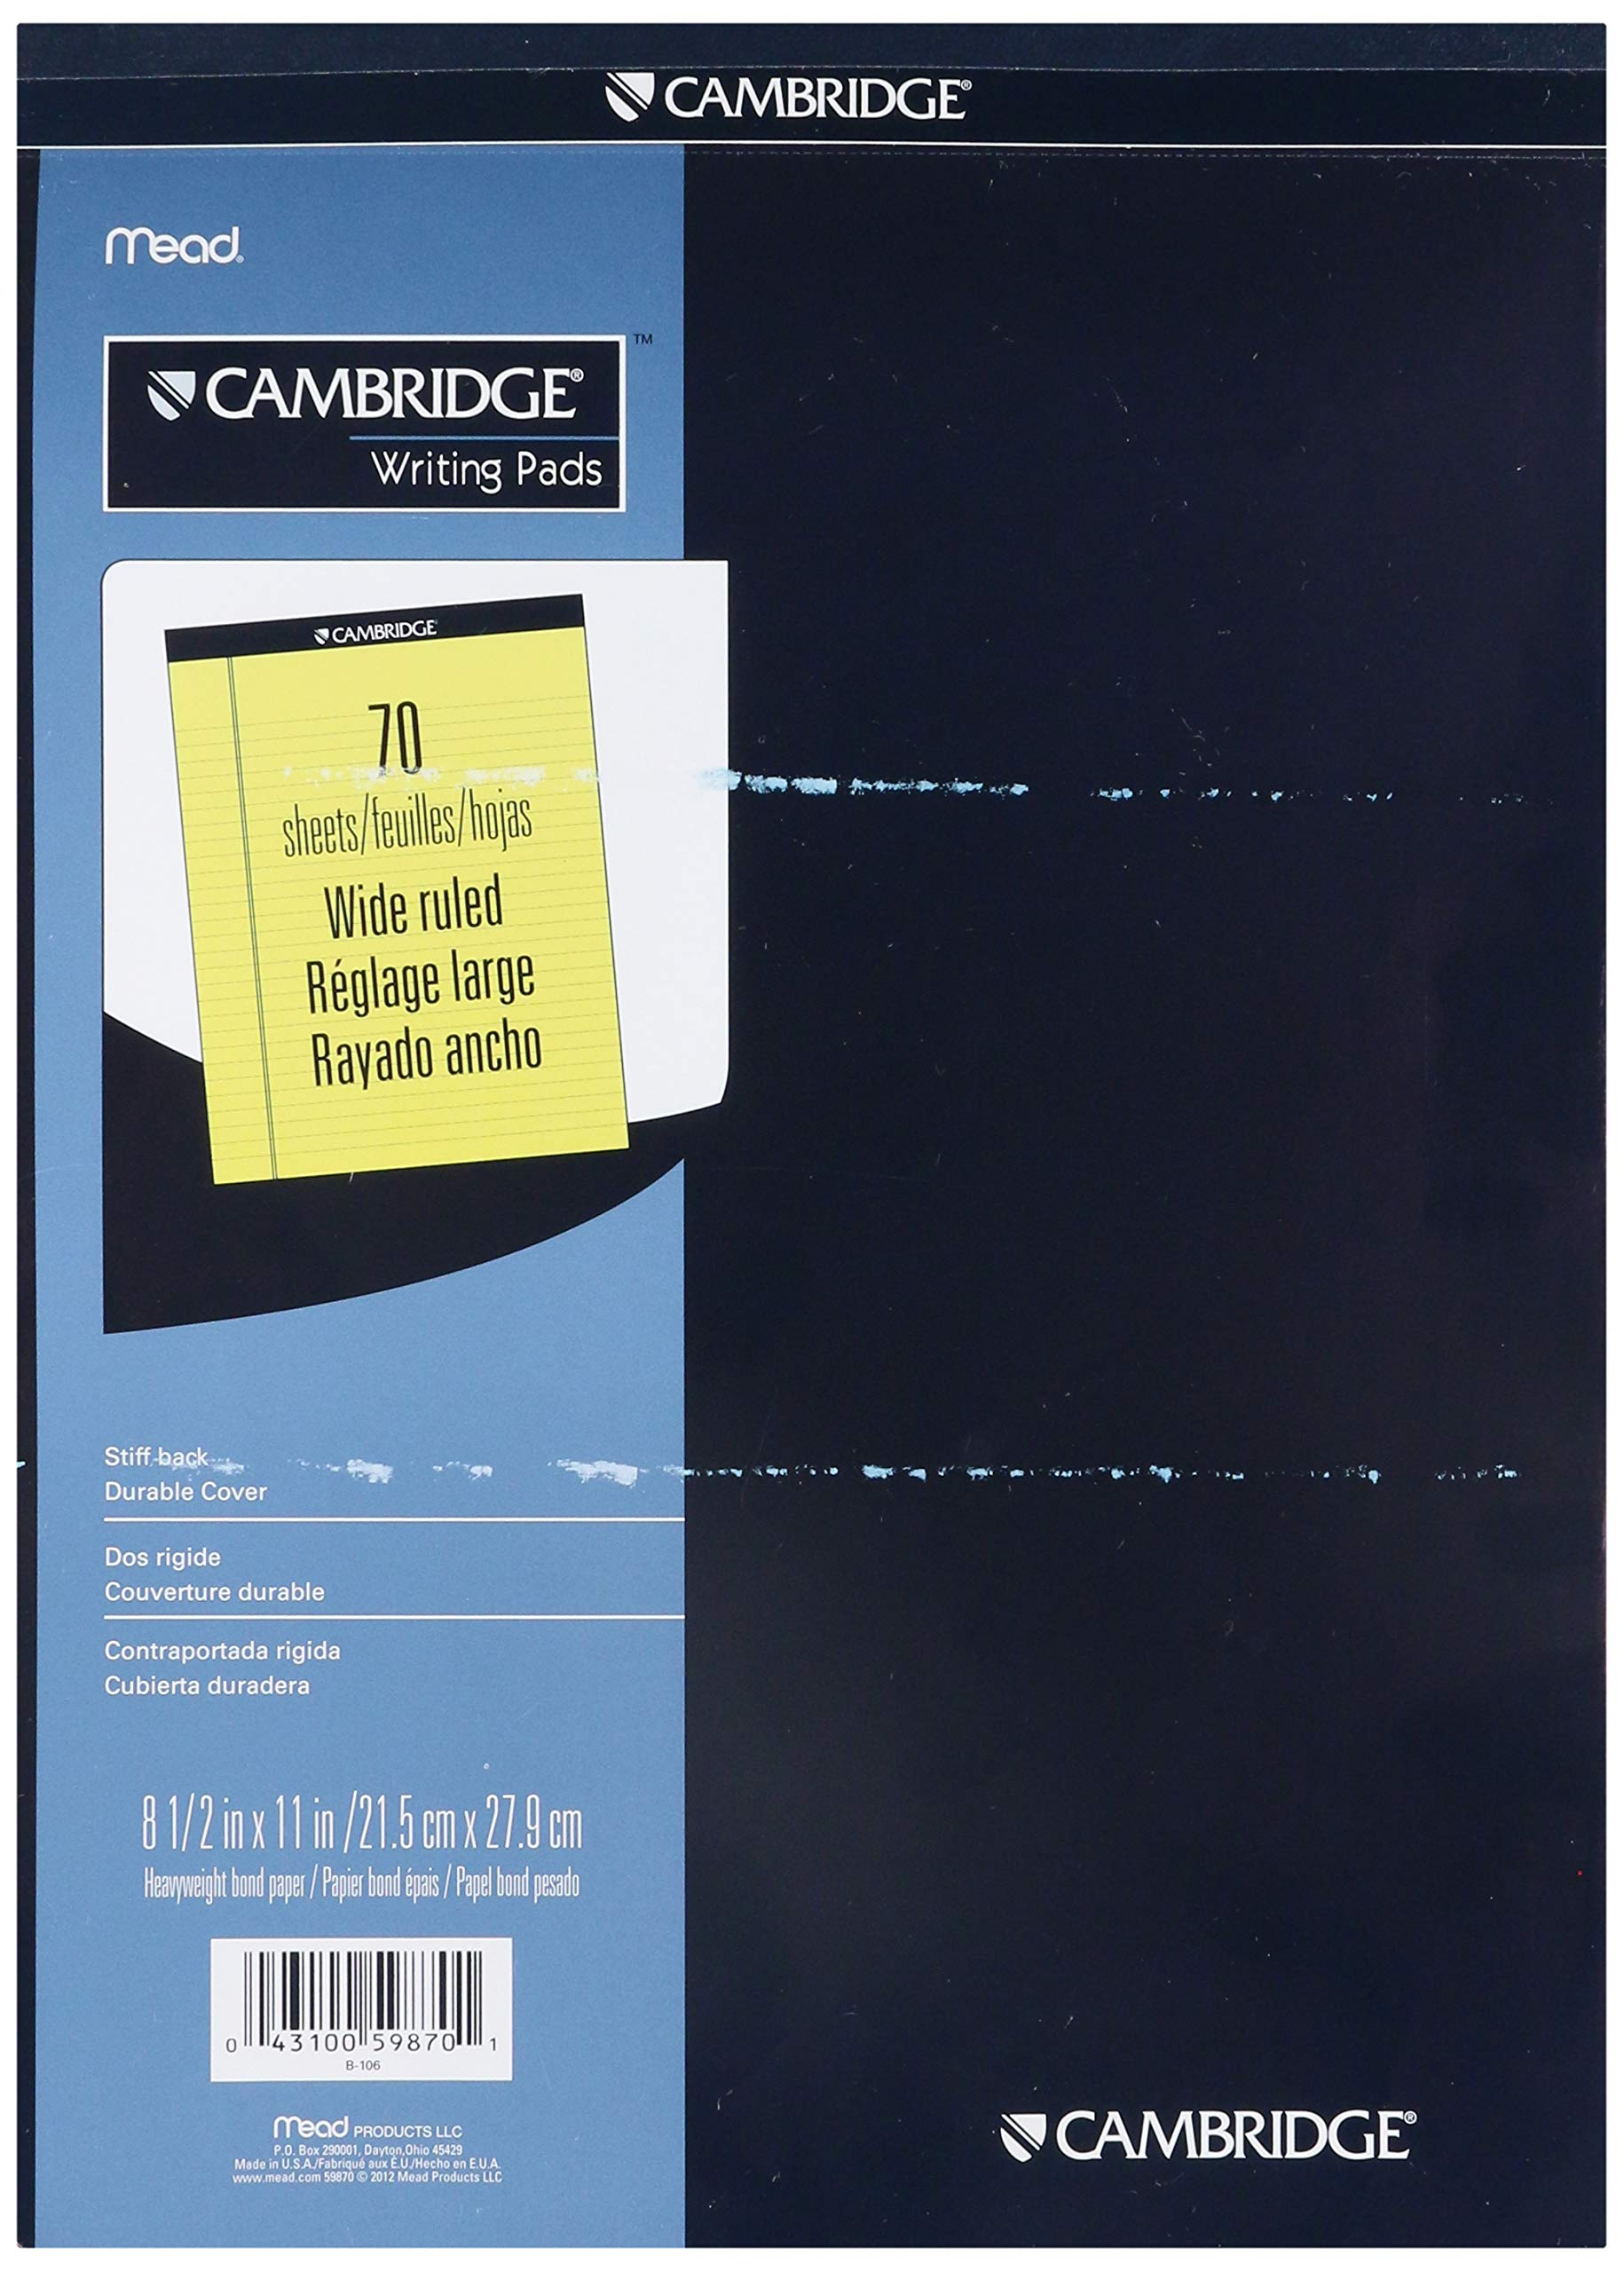 Mead Cambridge Stiff-Back Pad, Wide Ruled, 8.5 x 11 Inches, Canary, 70 Sheets per Pad, 12 Pads per Pack (59870) by Mead